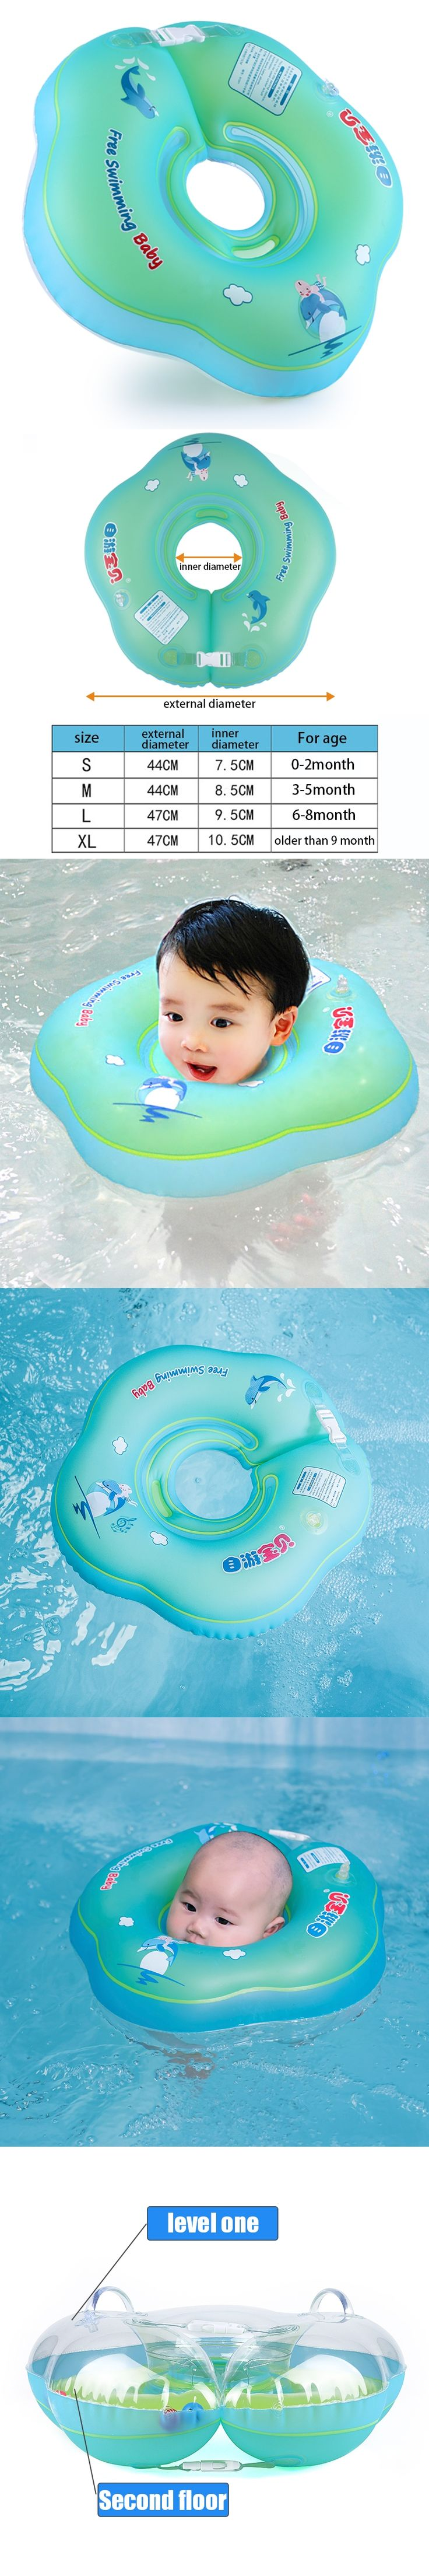 Best 25 Swimming Pool Accessories Ideas On Pinterest Swimming Pool Maintenance Intex